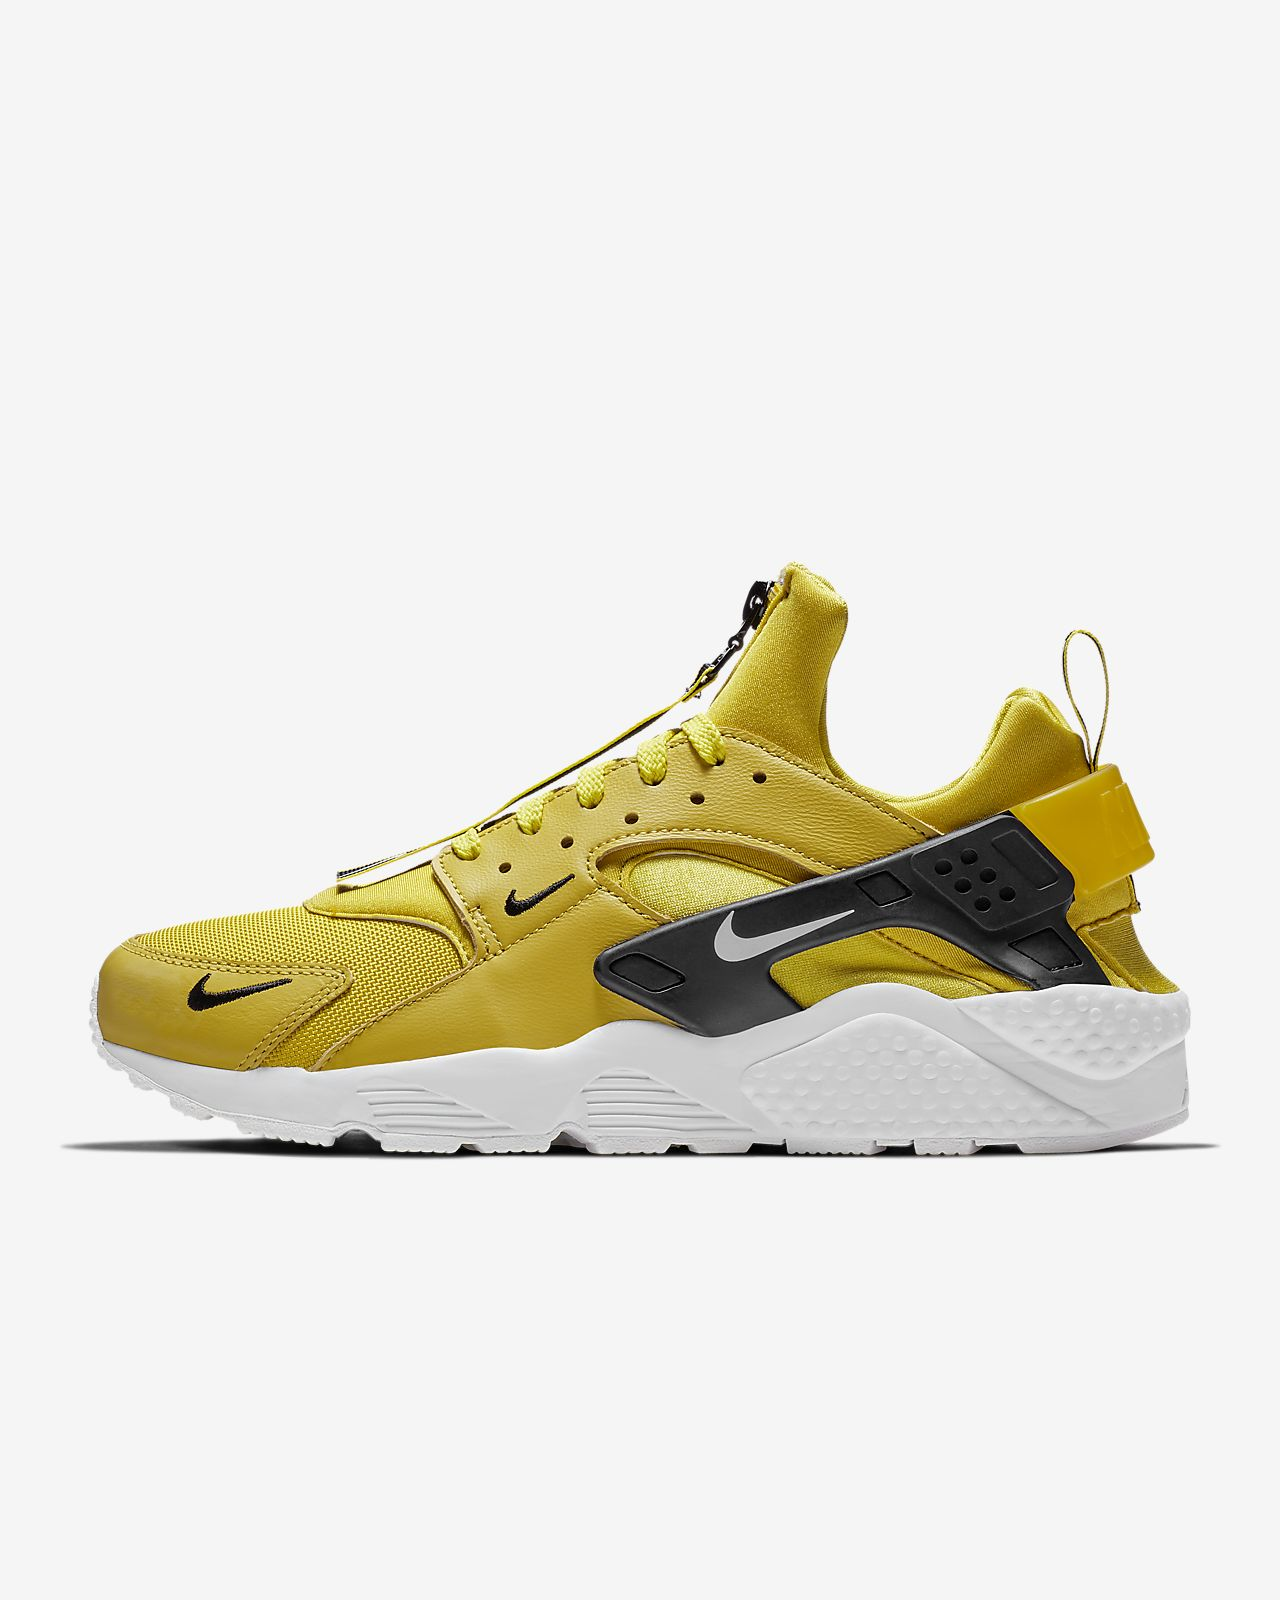 be3da2f6b959 Nike Air Huarache Run Premium Zip Men s Shoe. Nike.com